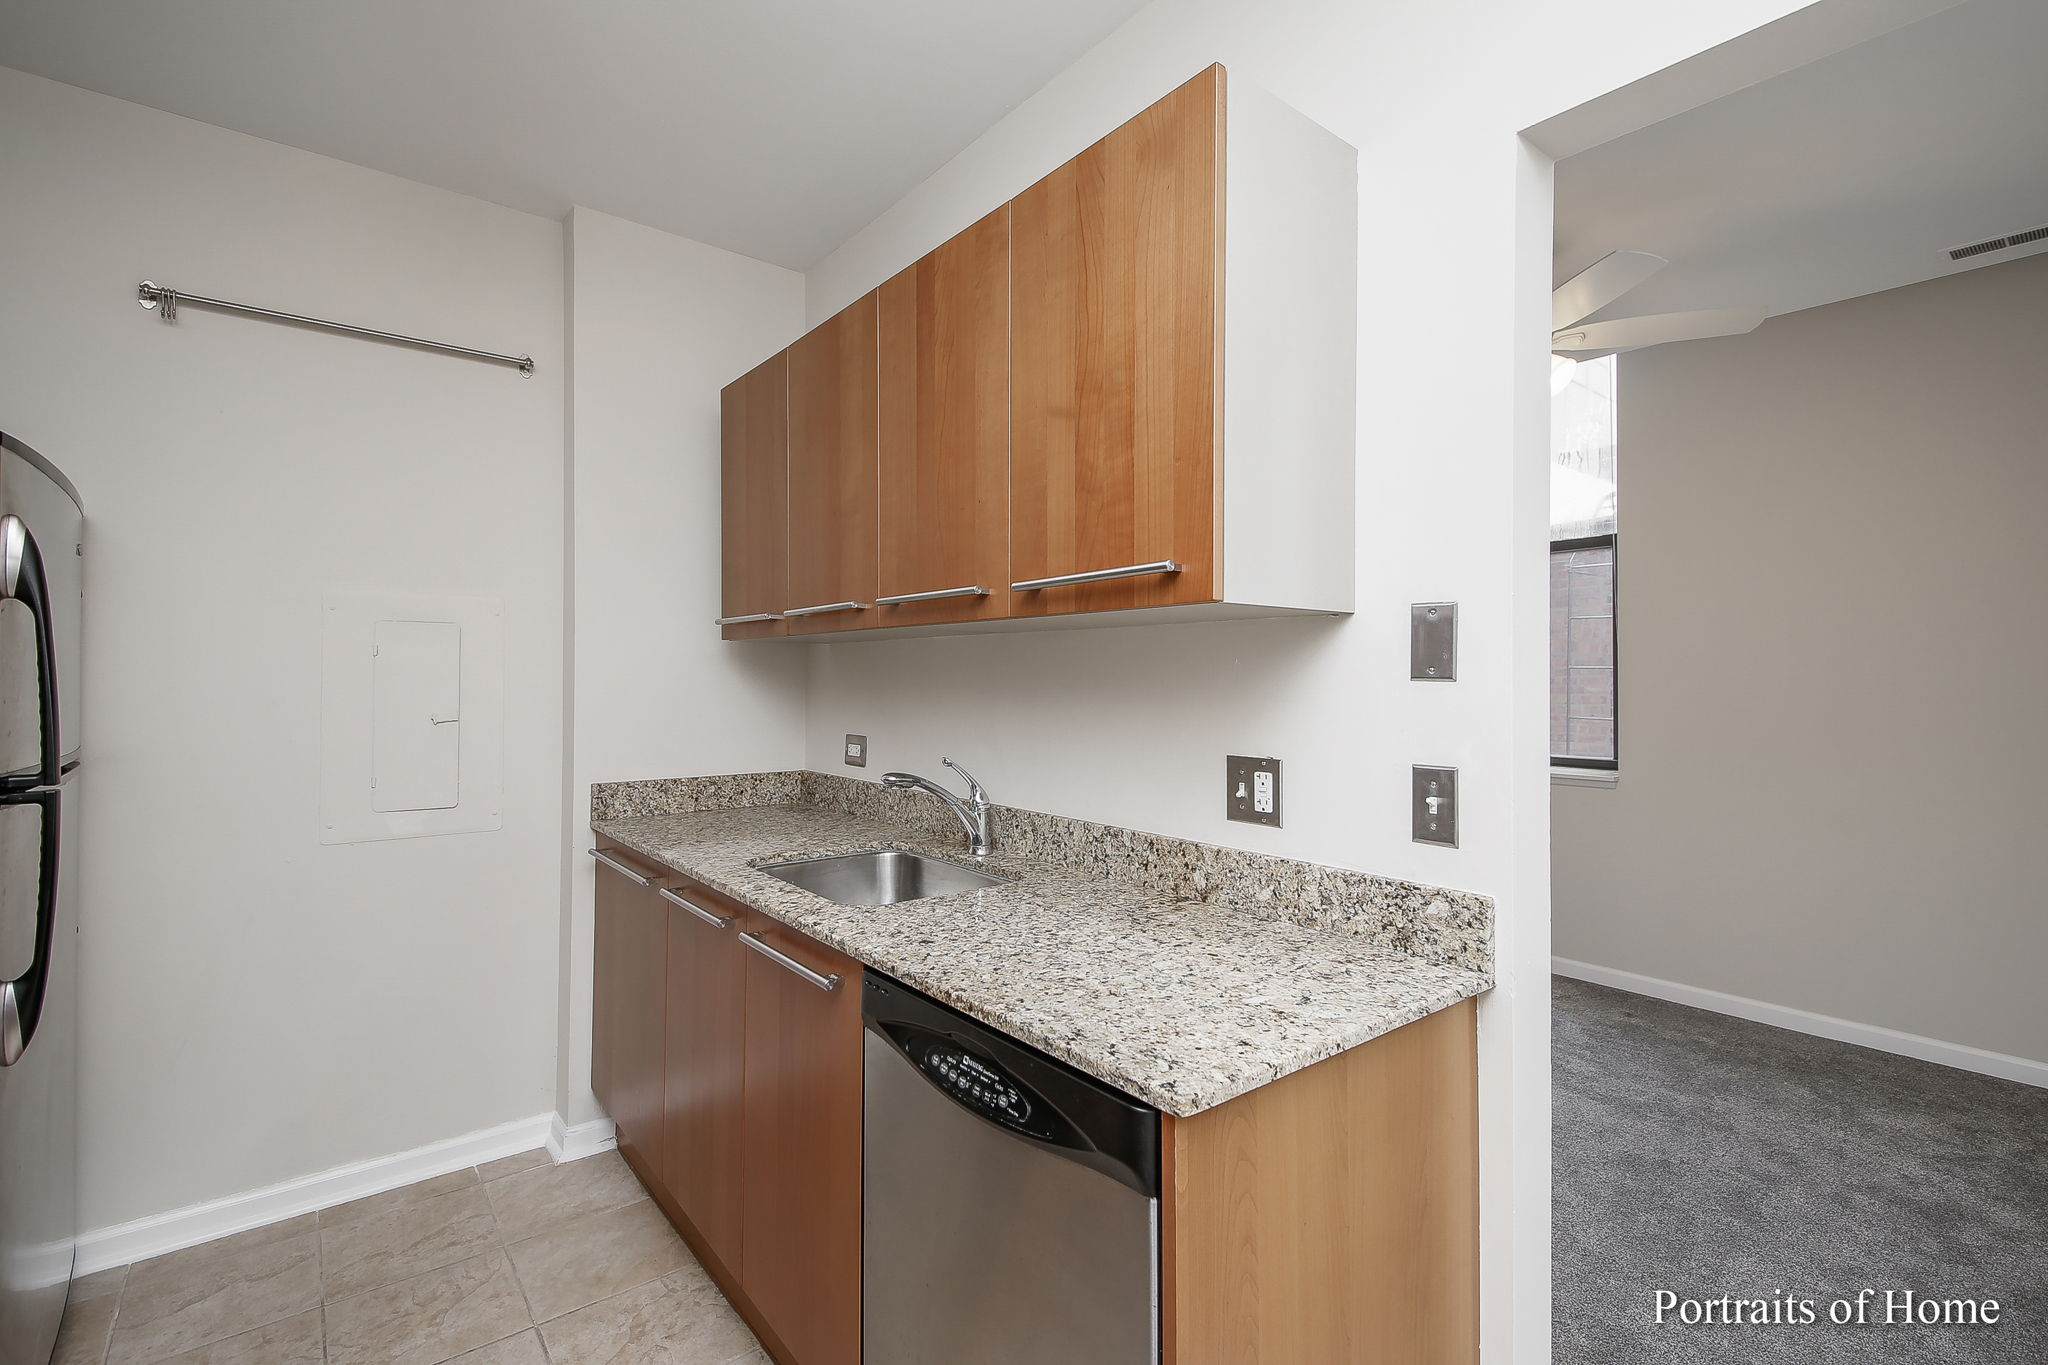 680 S Federal St, Chicago, IL 60605, USA Photo 8